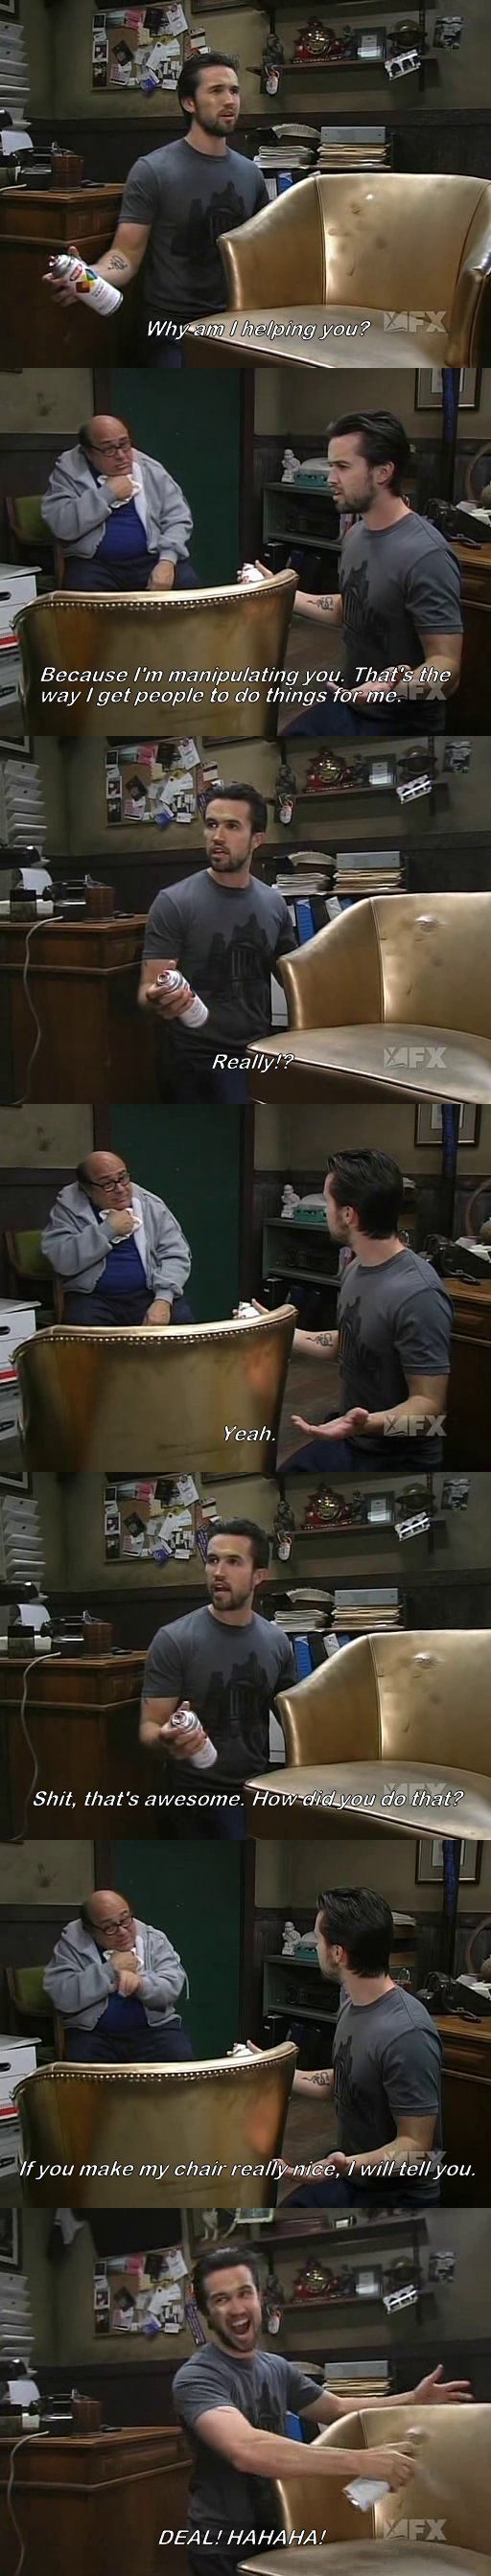 Mac and Frank | MEMES | Reddit funny, Funny pictures, It's always sunny